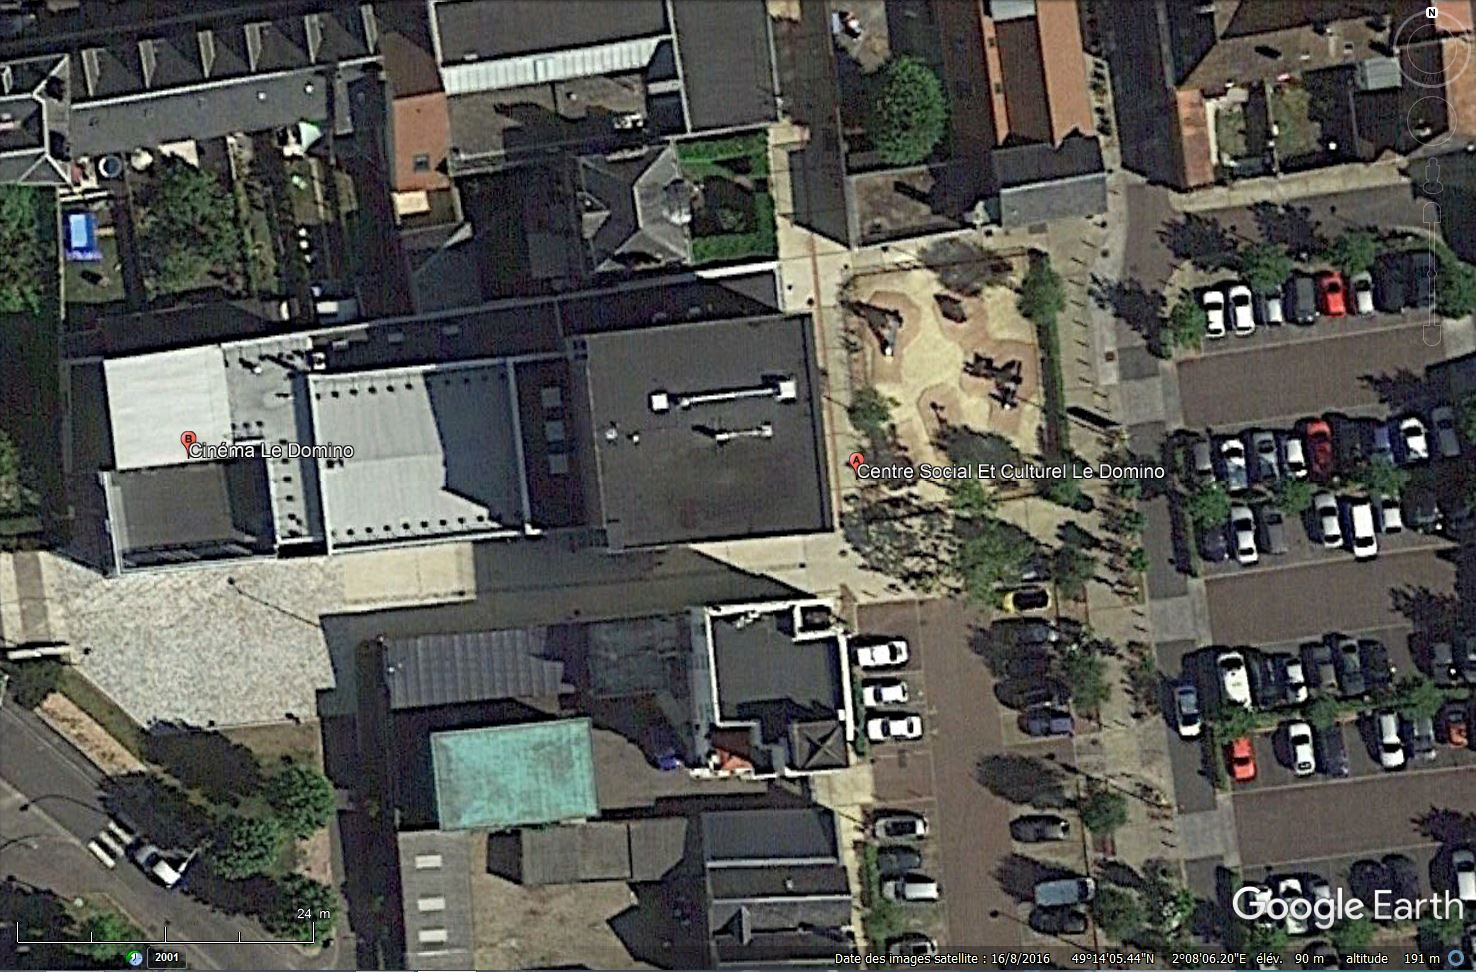 [Désormais visible sur Google Earth] - Centre Culturel de Méru, Oise Tsge_167